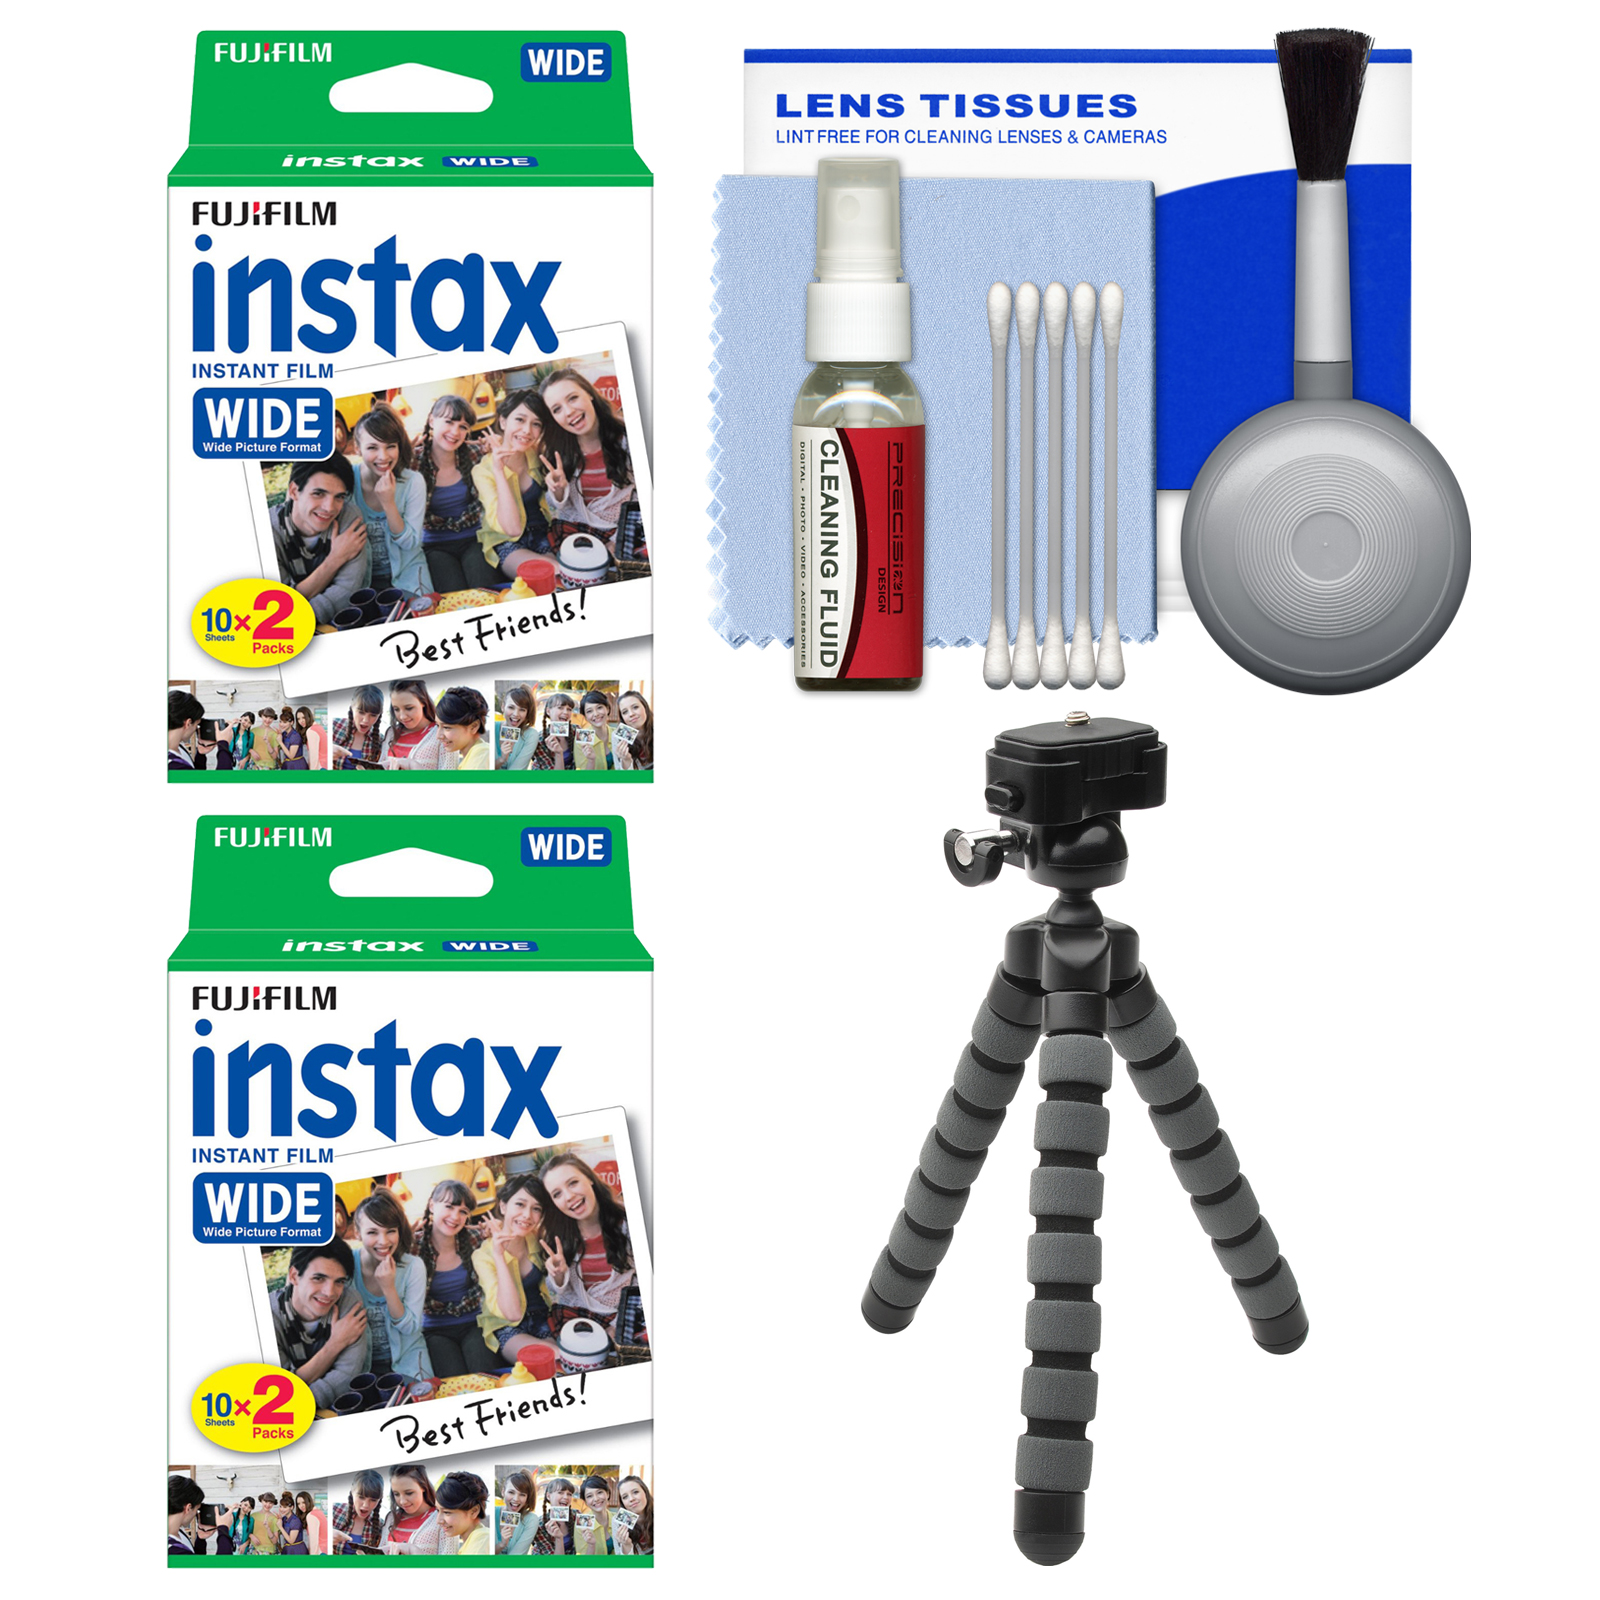 Essentials Bundle For Fujifilm Instax Wide 300 Instant Film Camera With 40 Prints Flex Tripod Cleaning Kit